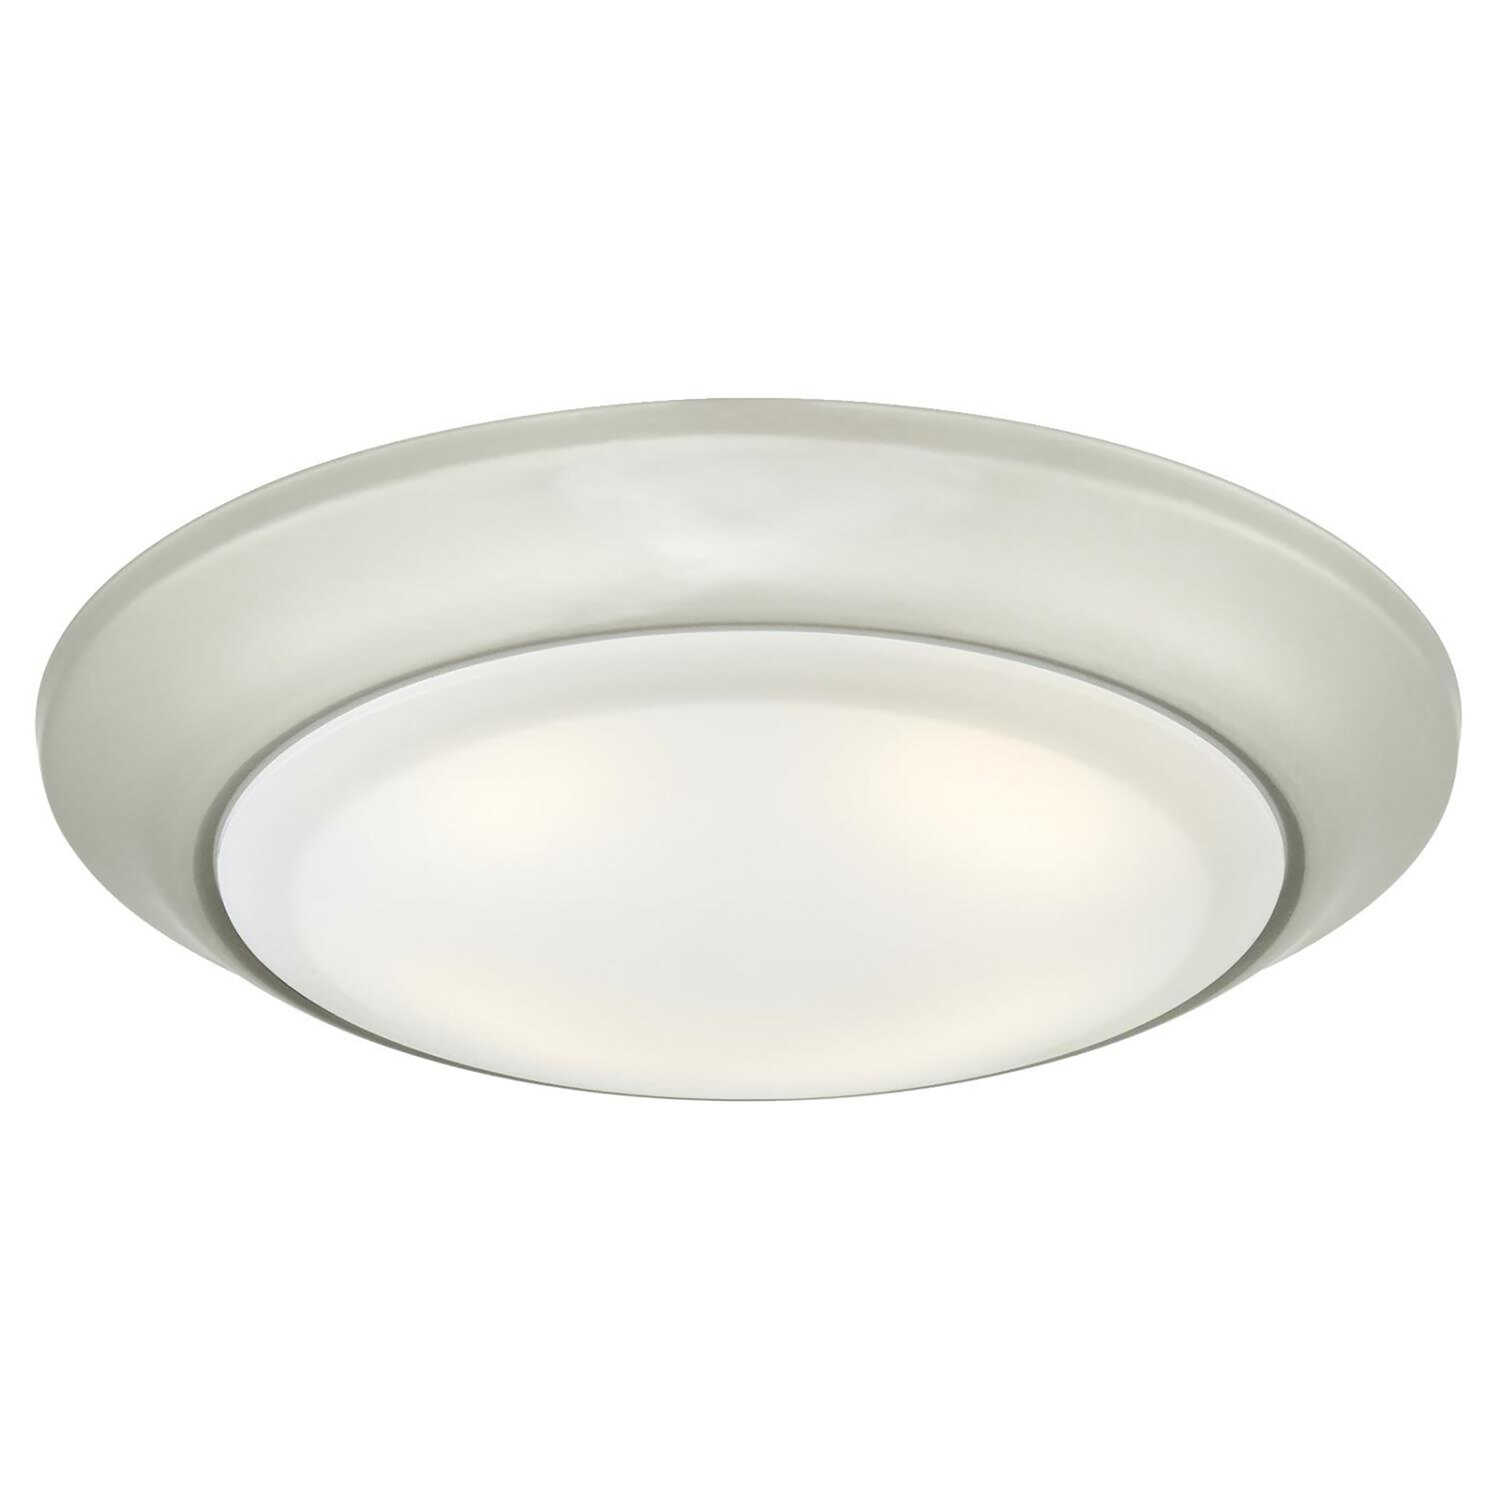 Westinghouse  Metallic  5.5 in. W Steel  Recessed Light Fixture  15 watts LED  Brushed Nickel